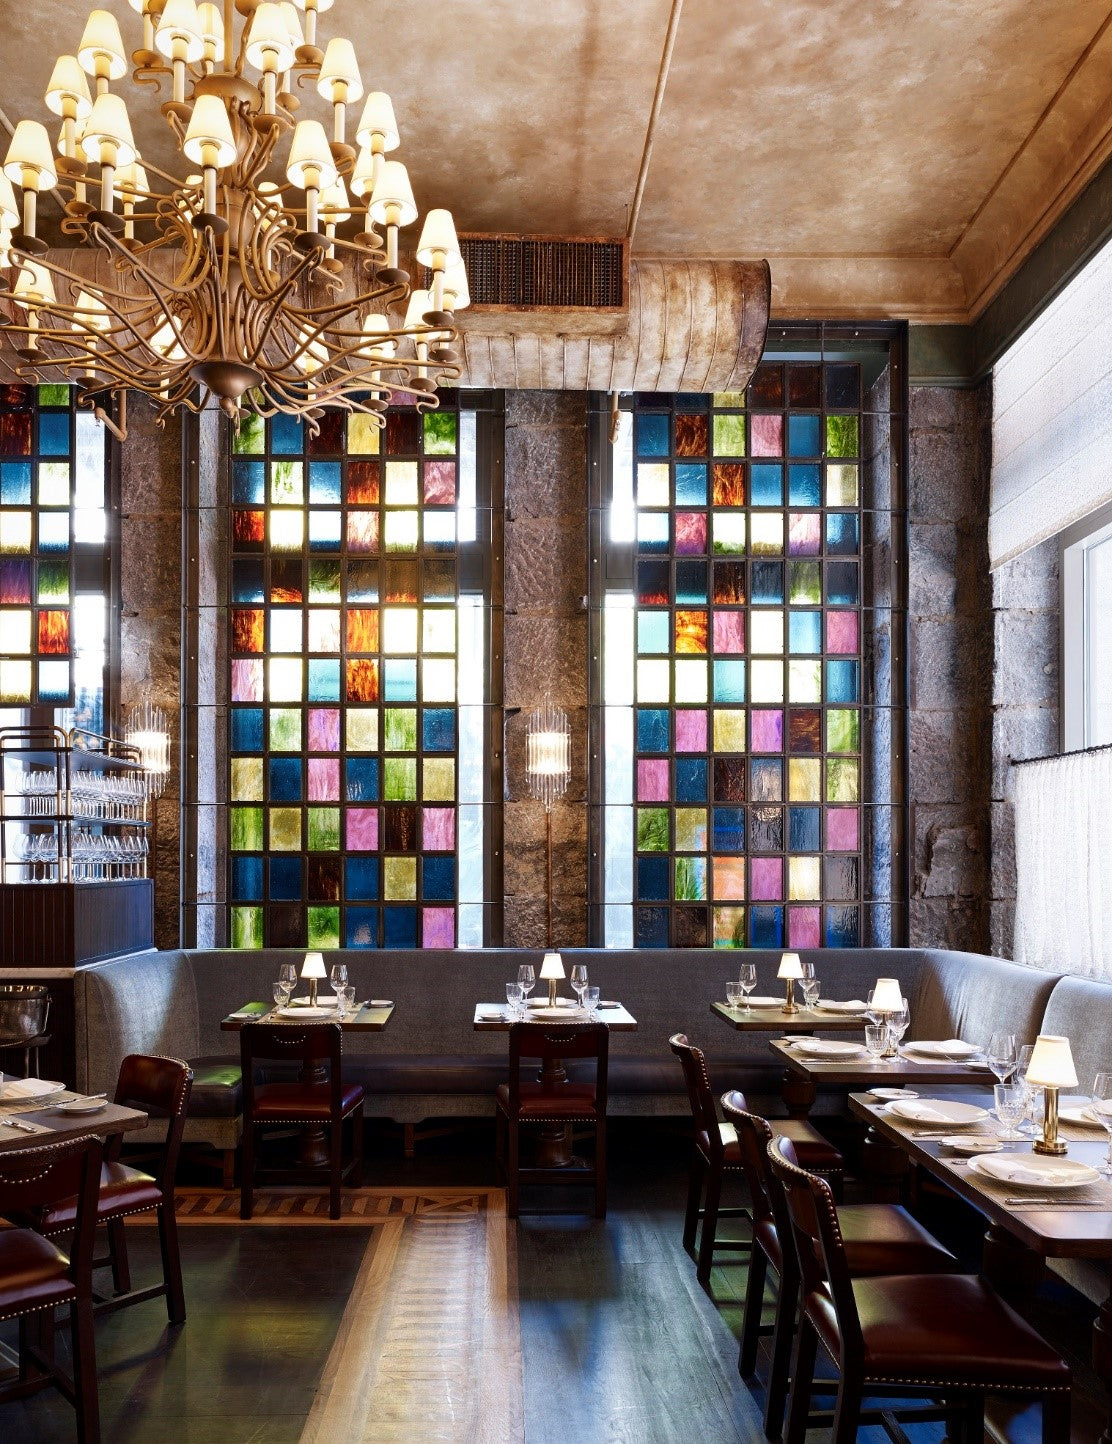 The Beekman, NYC - Temple Court restaurant with set tables, large stained-glass windows, and an elegant chandelier